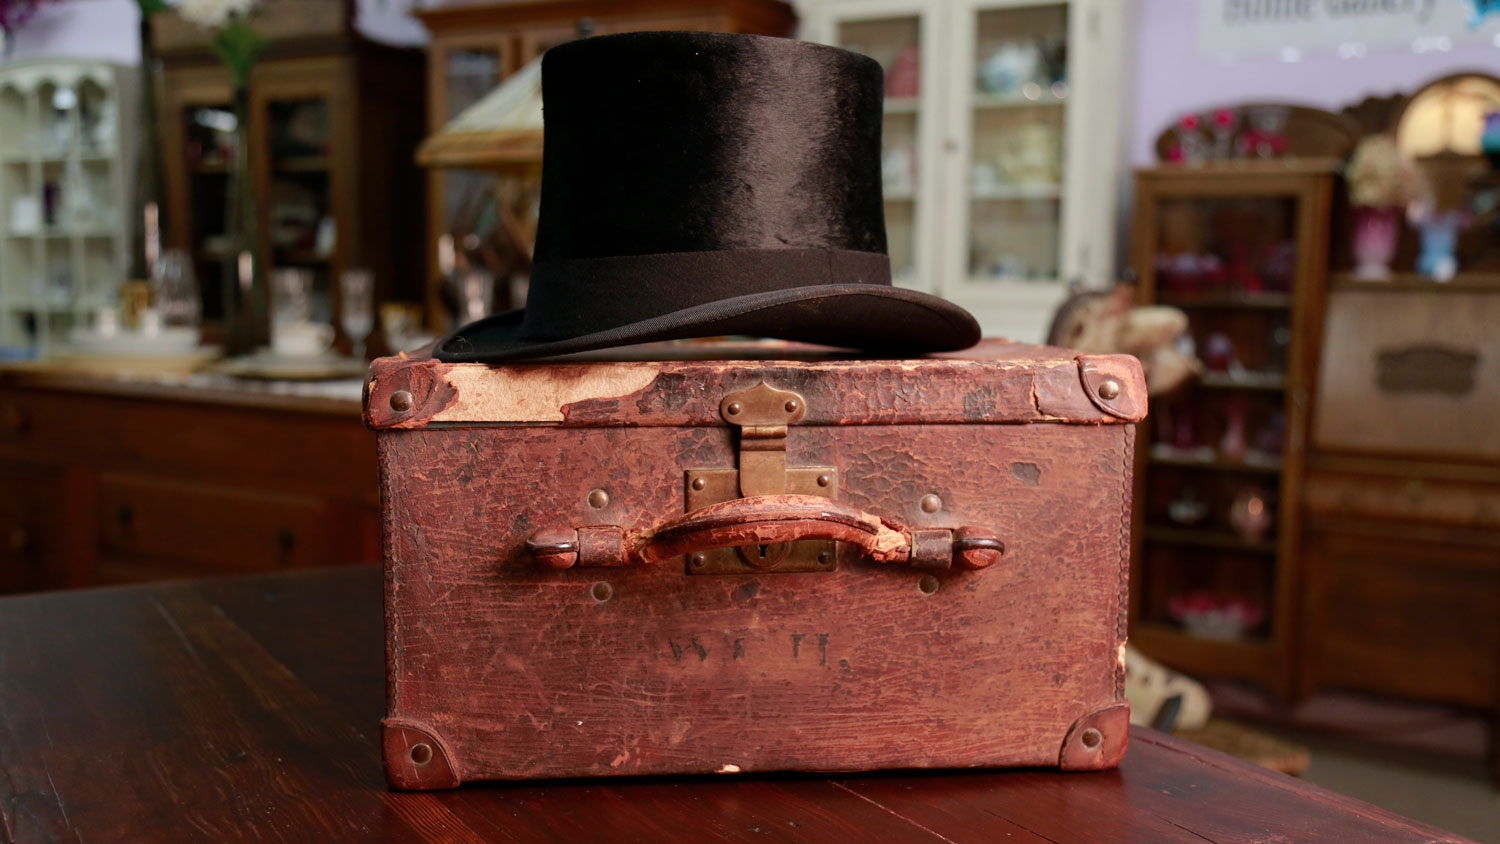 A hat box for a top hat with the worn initials W.G.H. is shown with a collectible black beaver top hat.